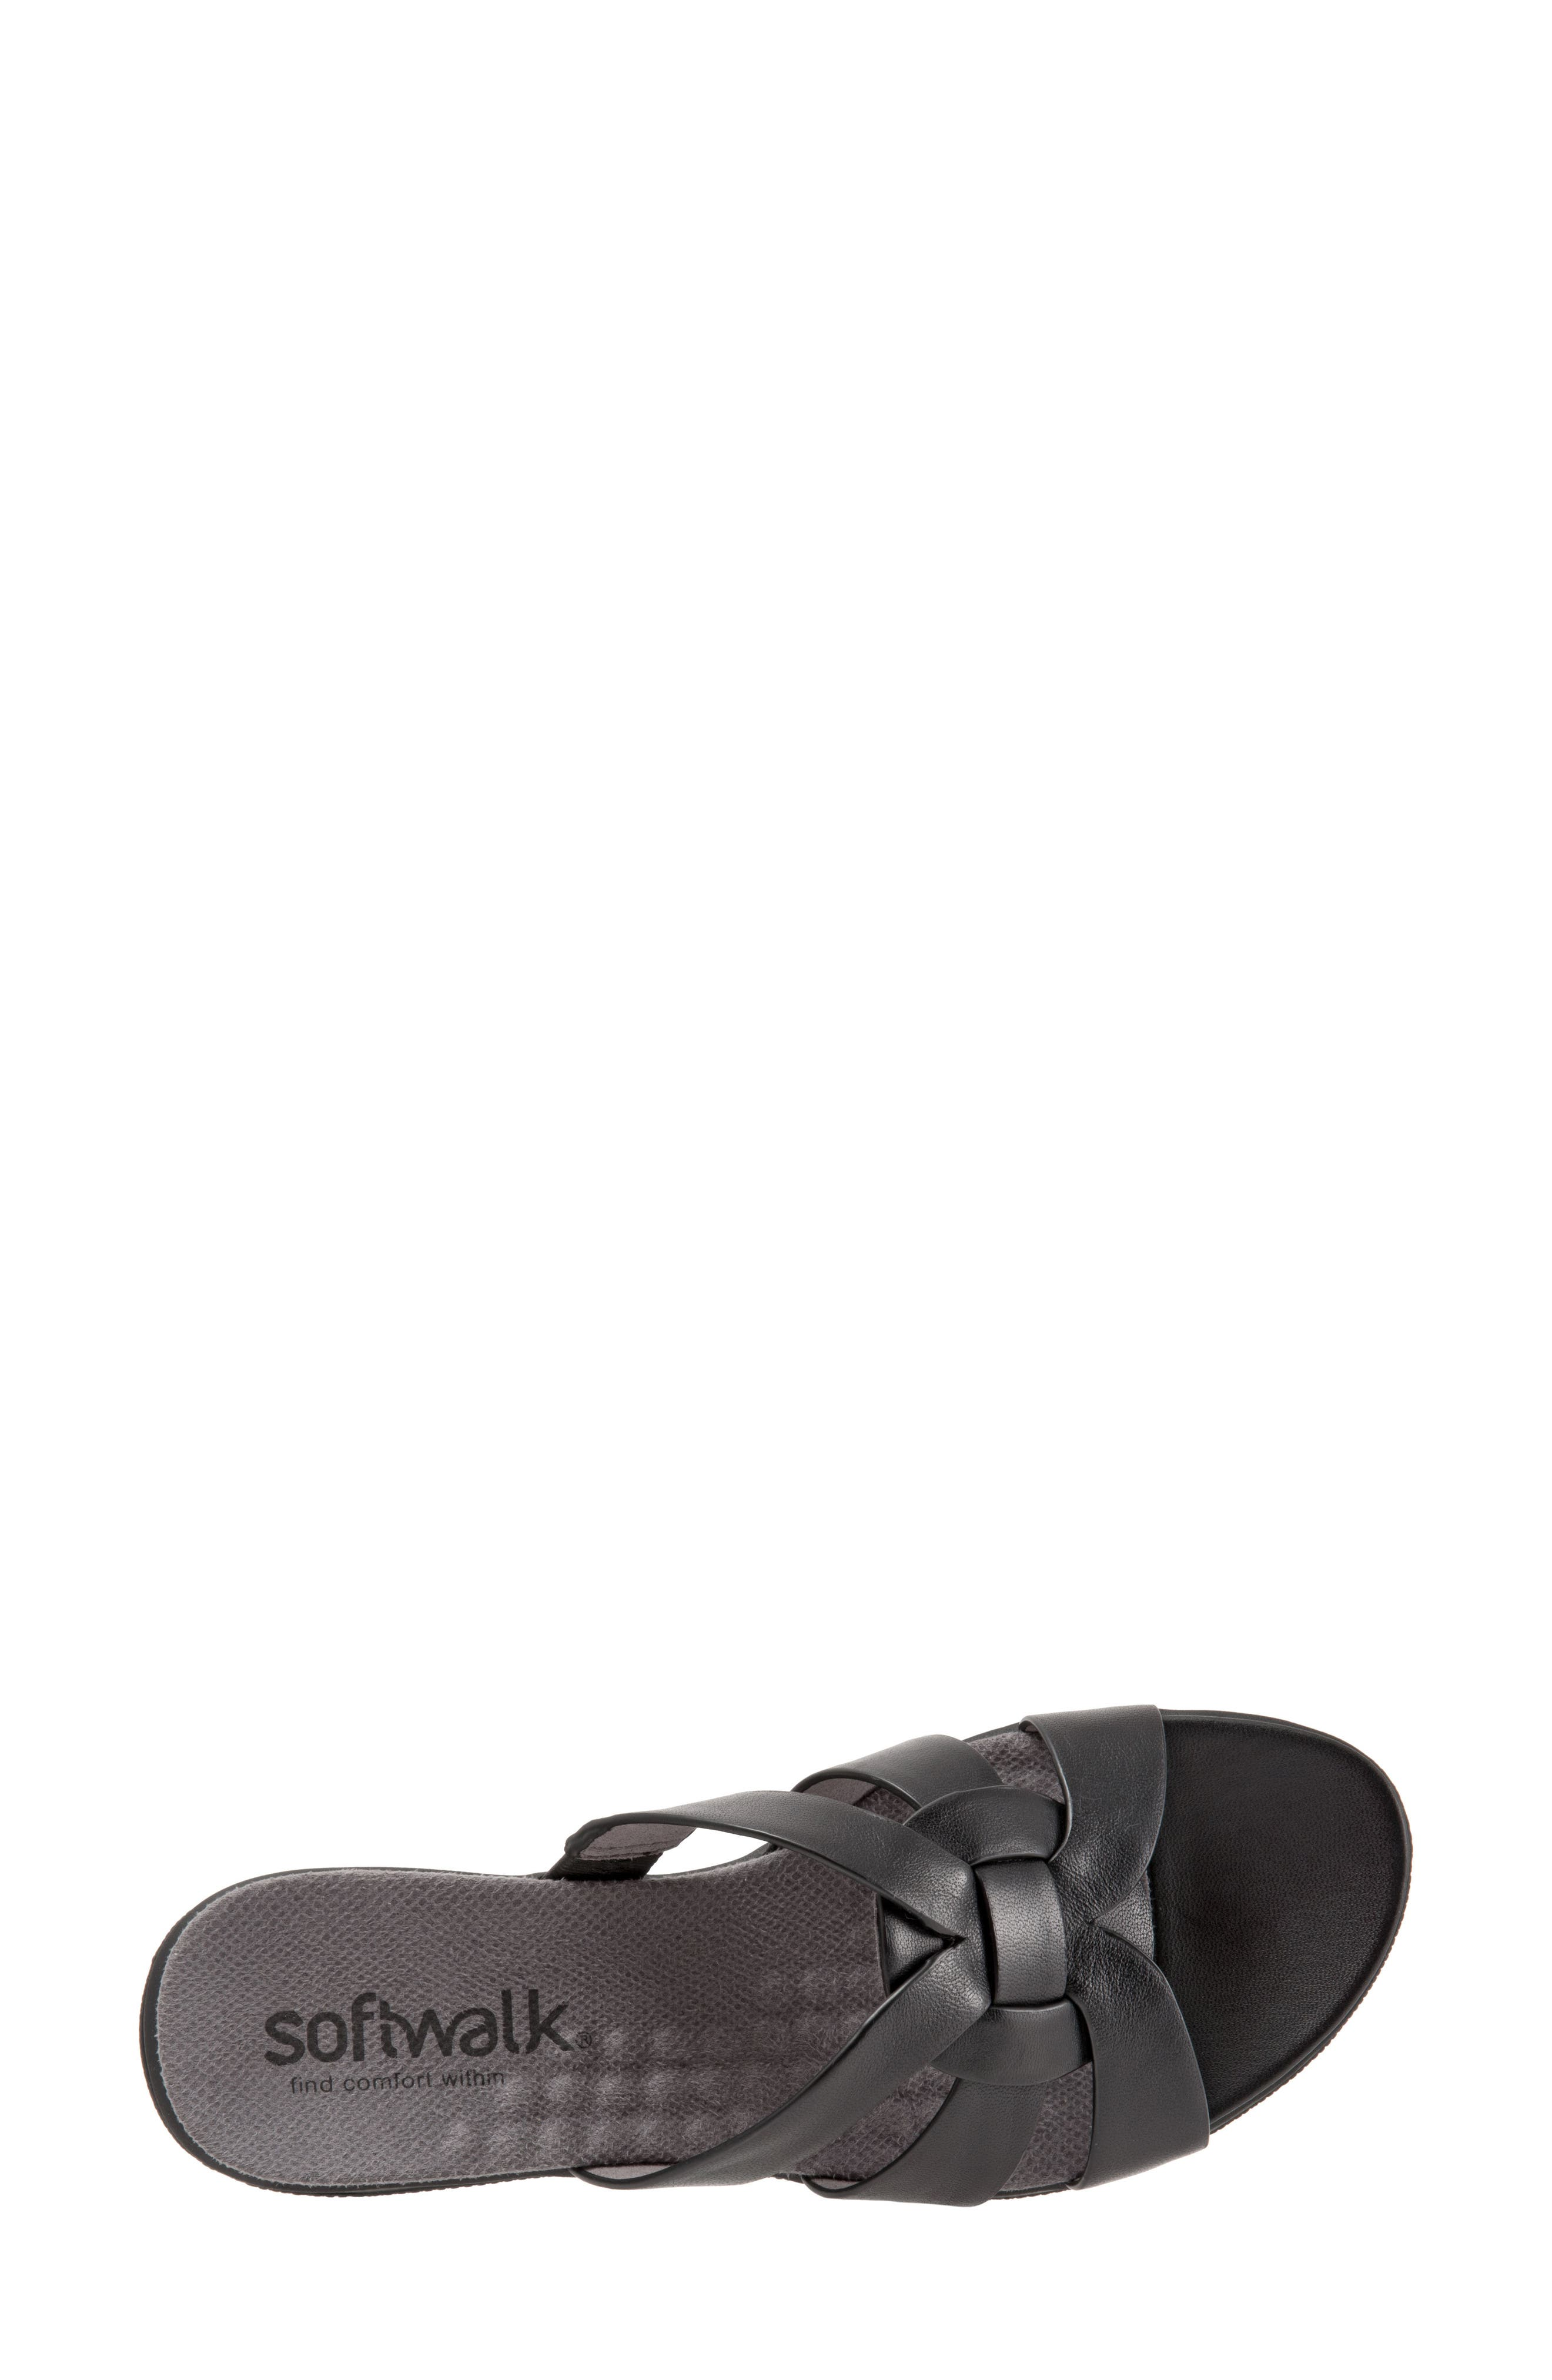 Thompson Slide Sandal,                             Alternate thumbnail 5, color,                             001